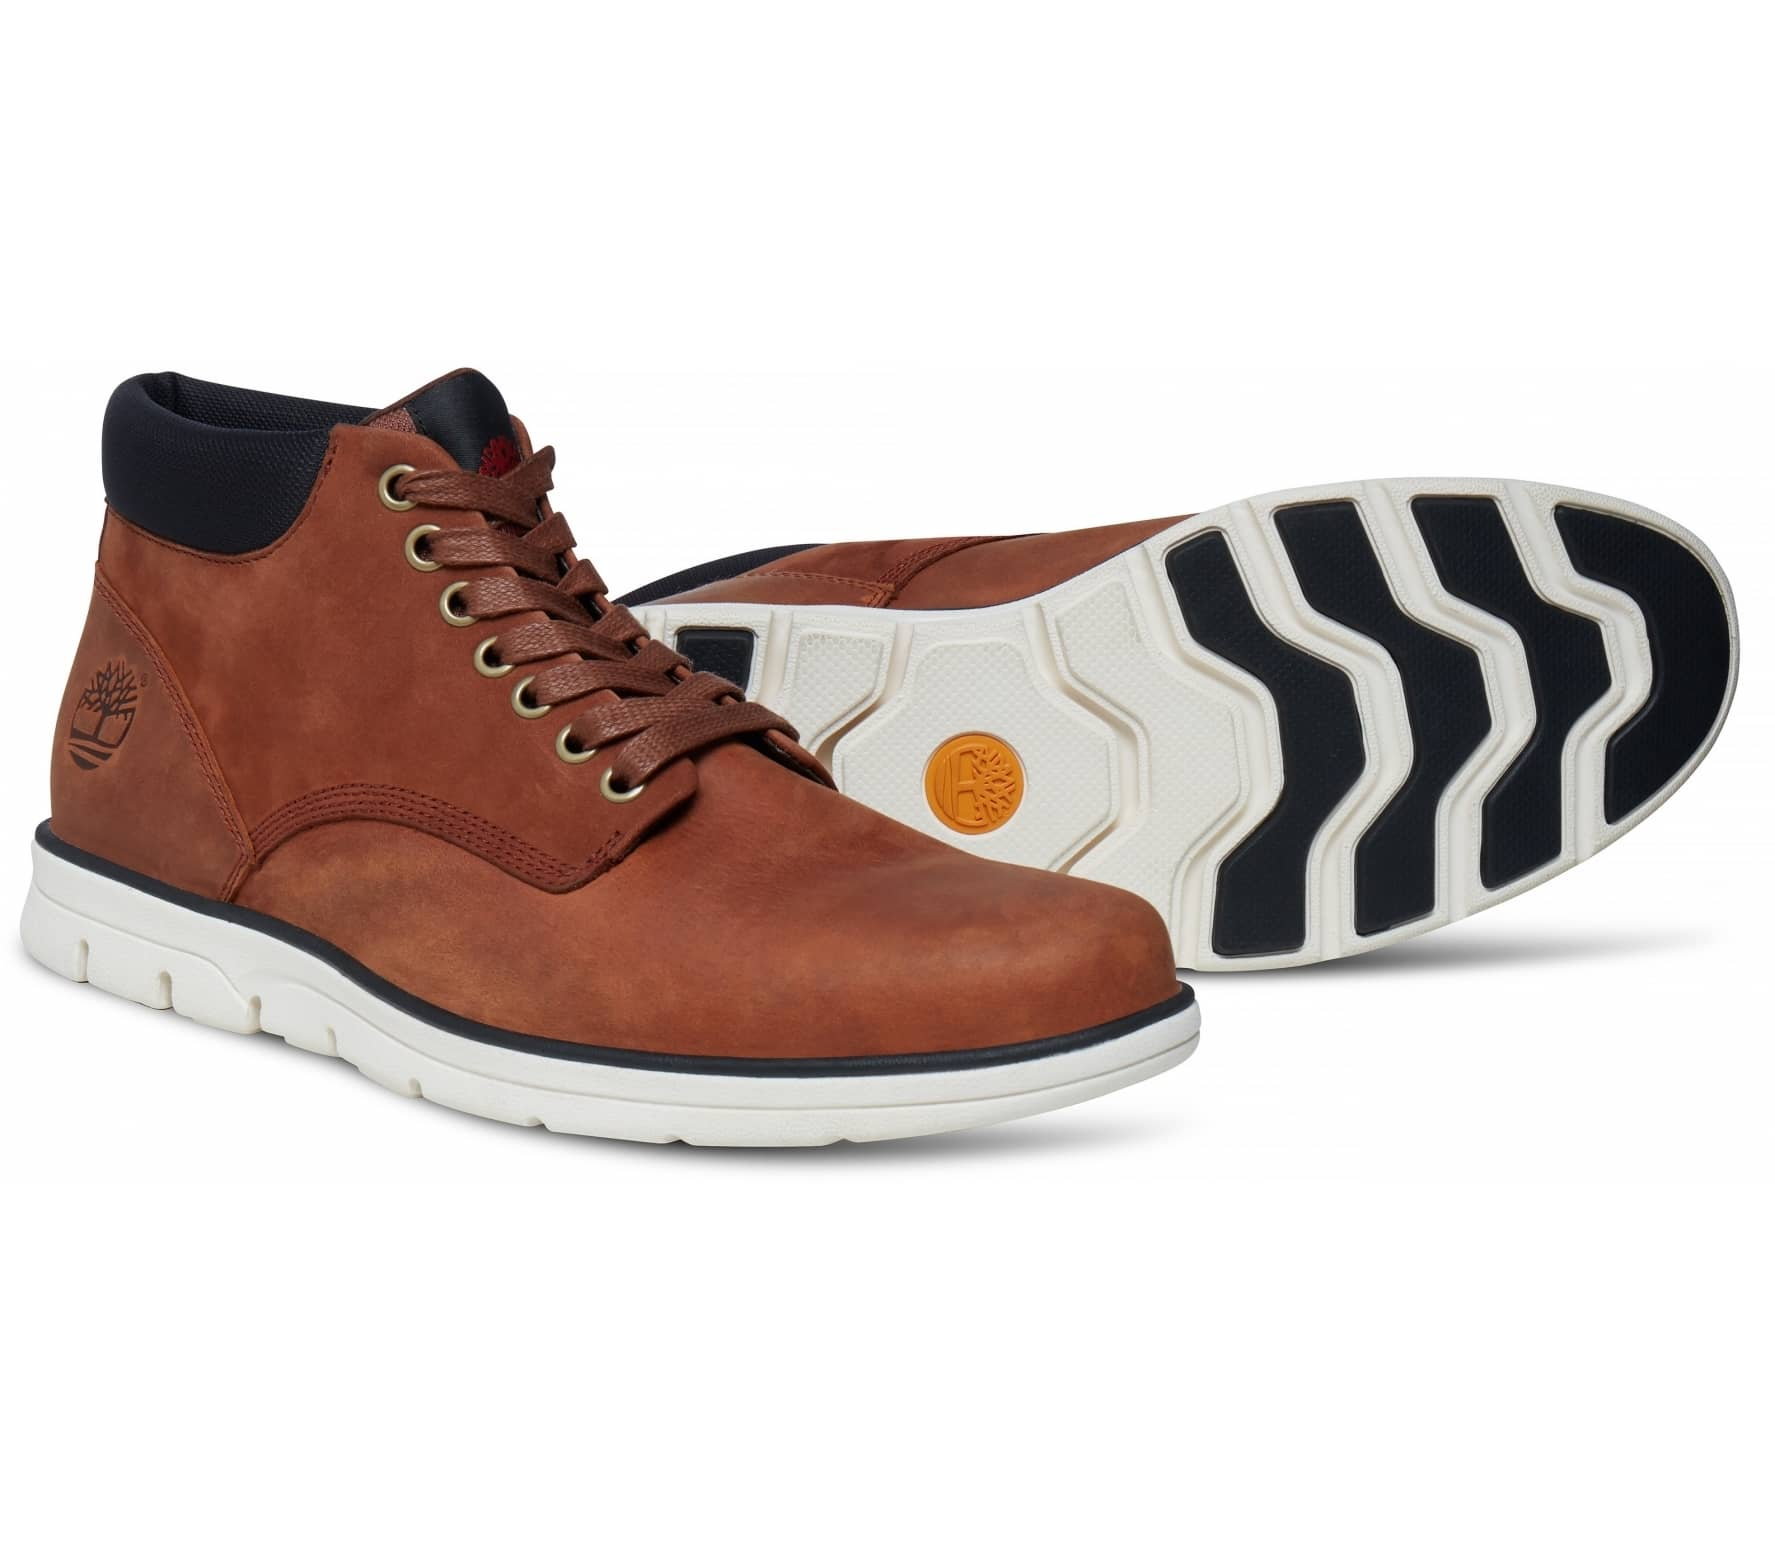 Timberland - Bradstreet Chukka Leather men s mountain lifestyle shoes  (light brown black) 16ee1481a52